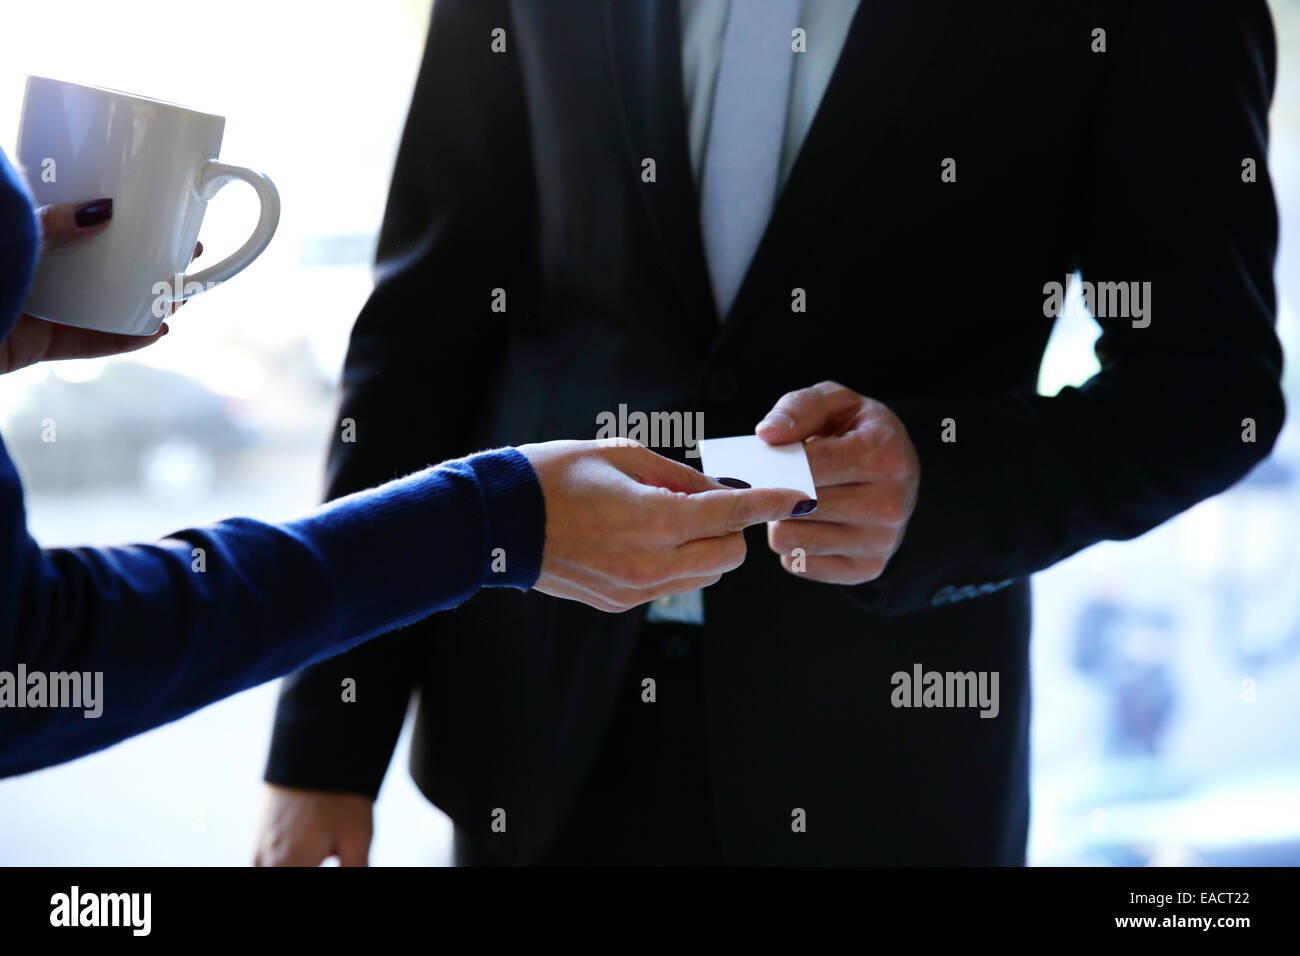 Concept shot of exchange business card between man and woman Stock ...